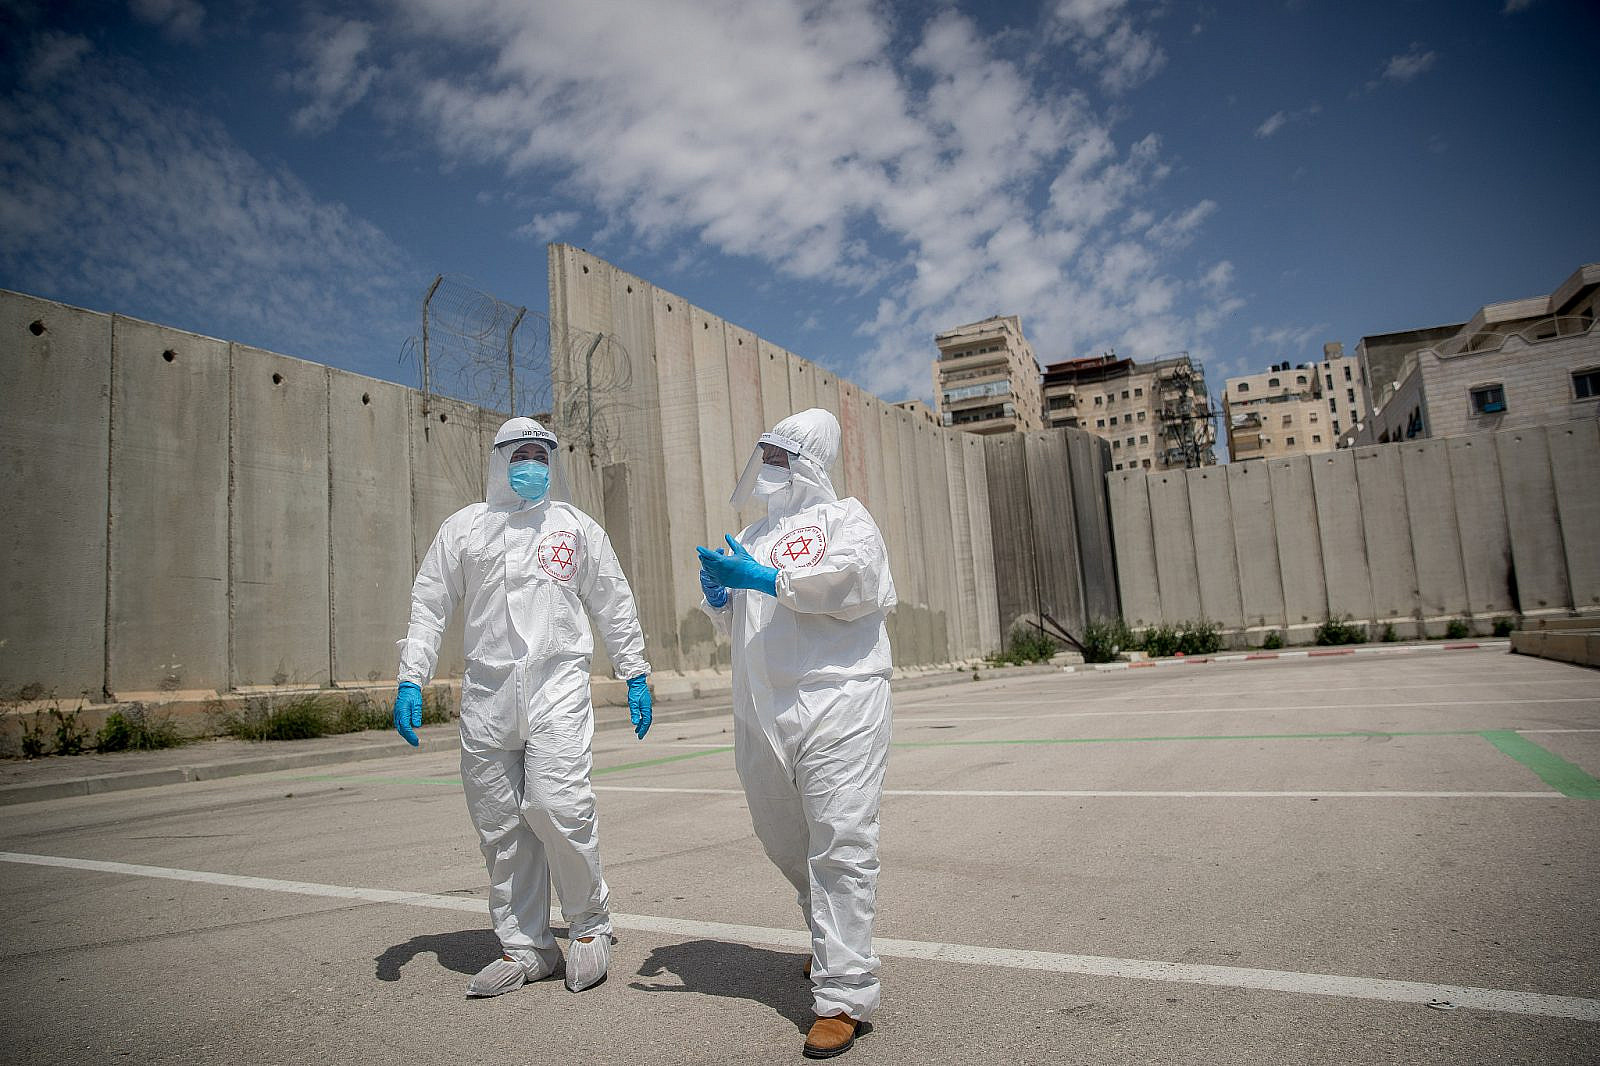 Magen David Adom medical workers seen at a drive-through site to collect samples for coronavirus testing, near the separation wall at the Shuafat Refugee Camp, Jerusalem, April 16, 2020. (Yonatan Sindel/Flash90)